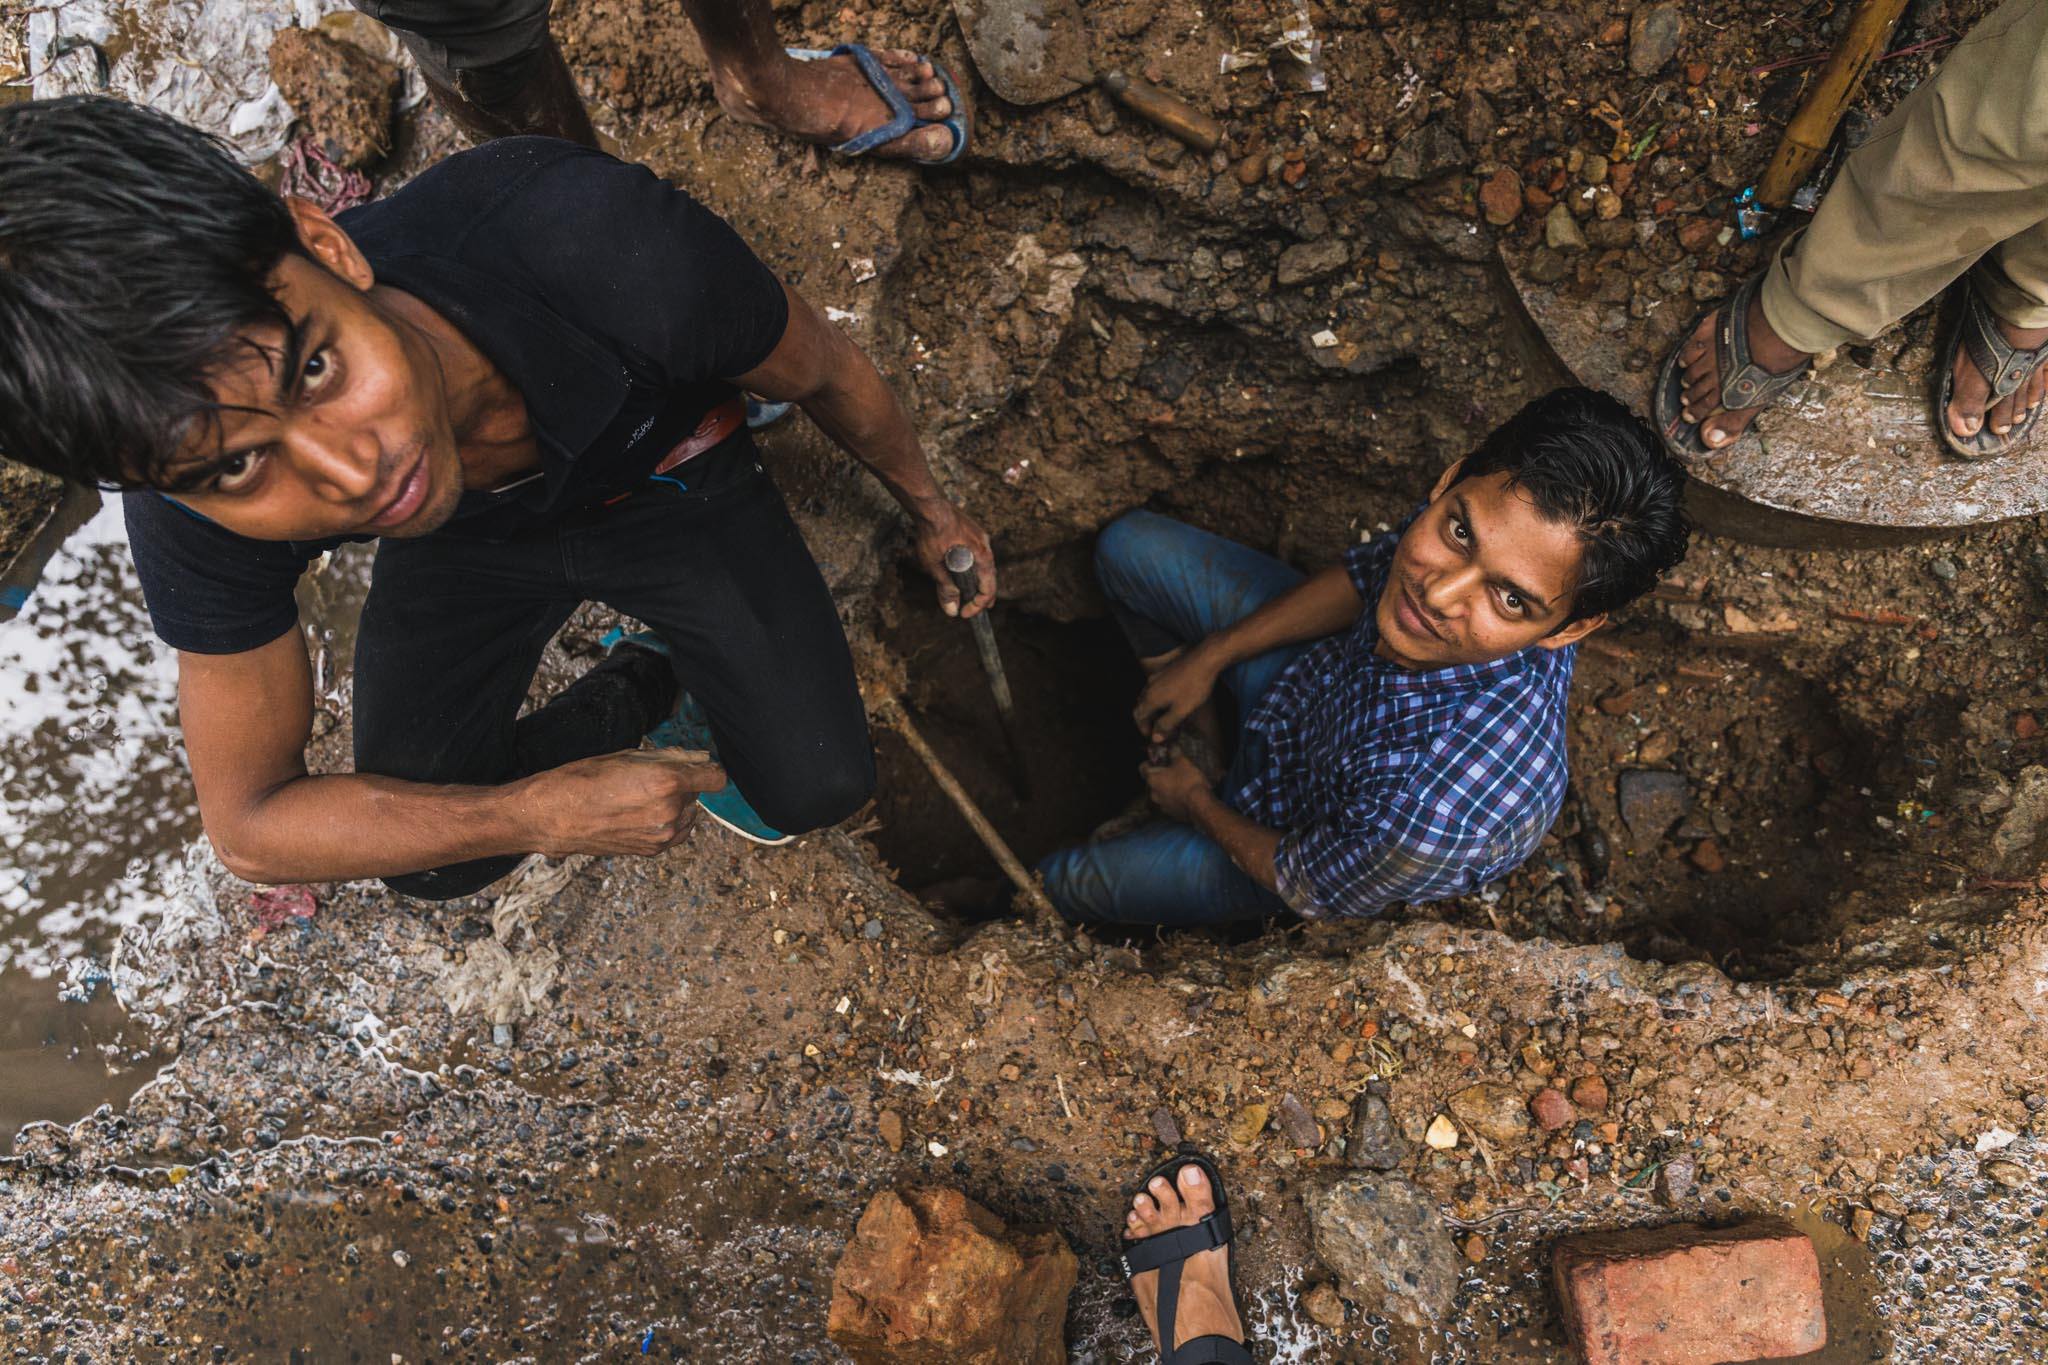 Indian street workers in hole.